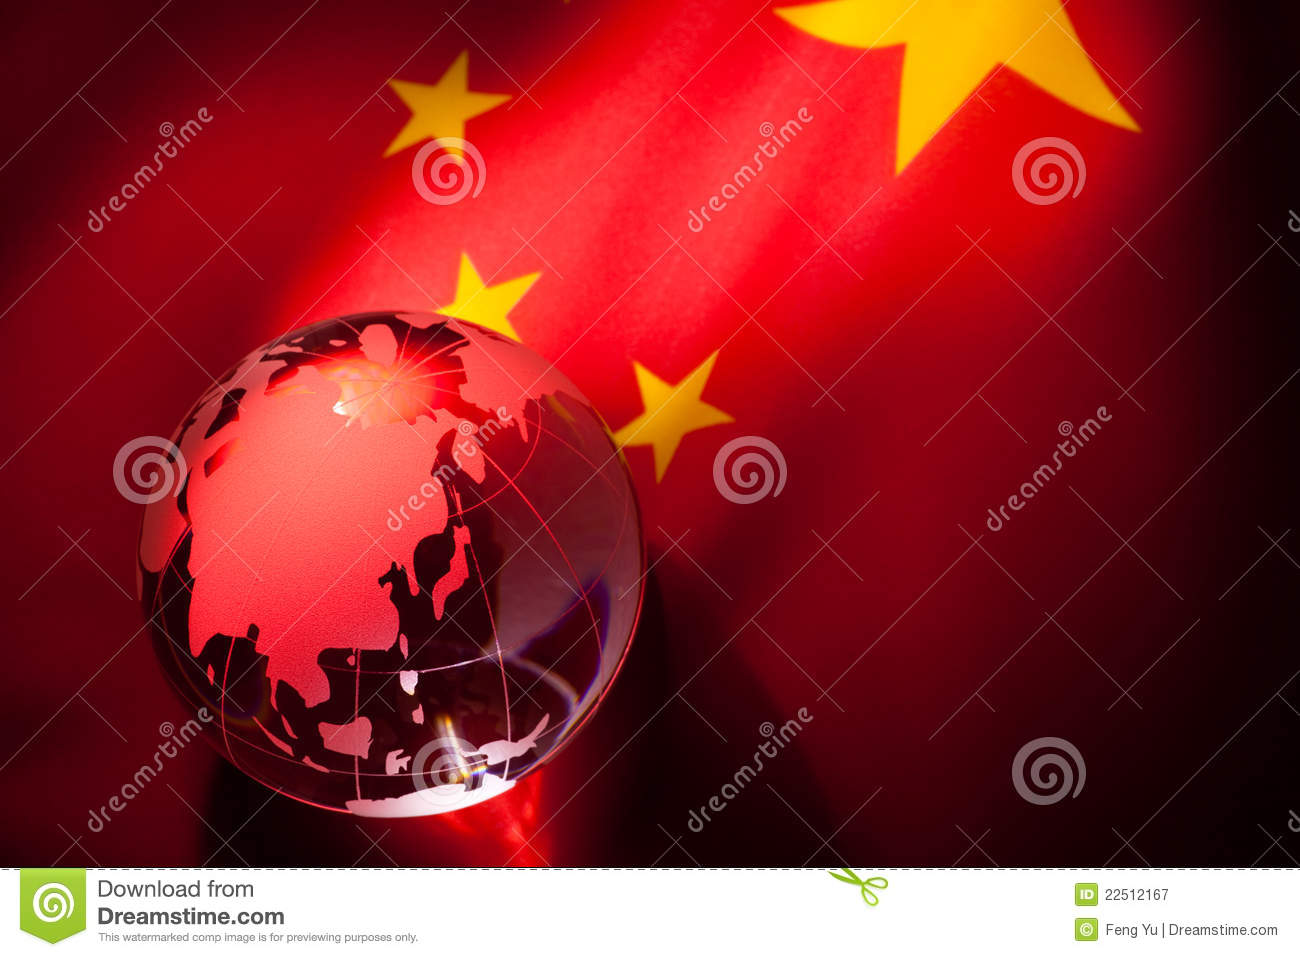 Globe et indicateur de la Chine